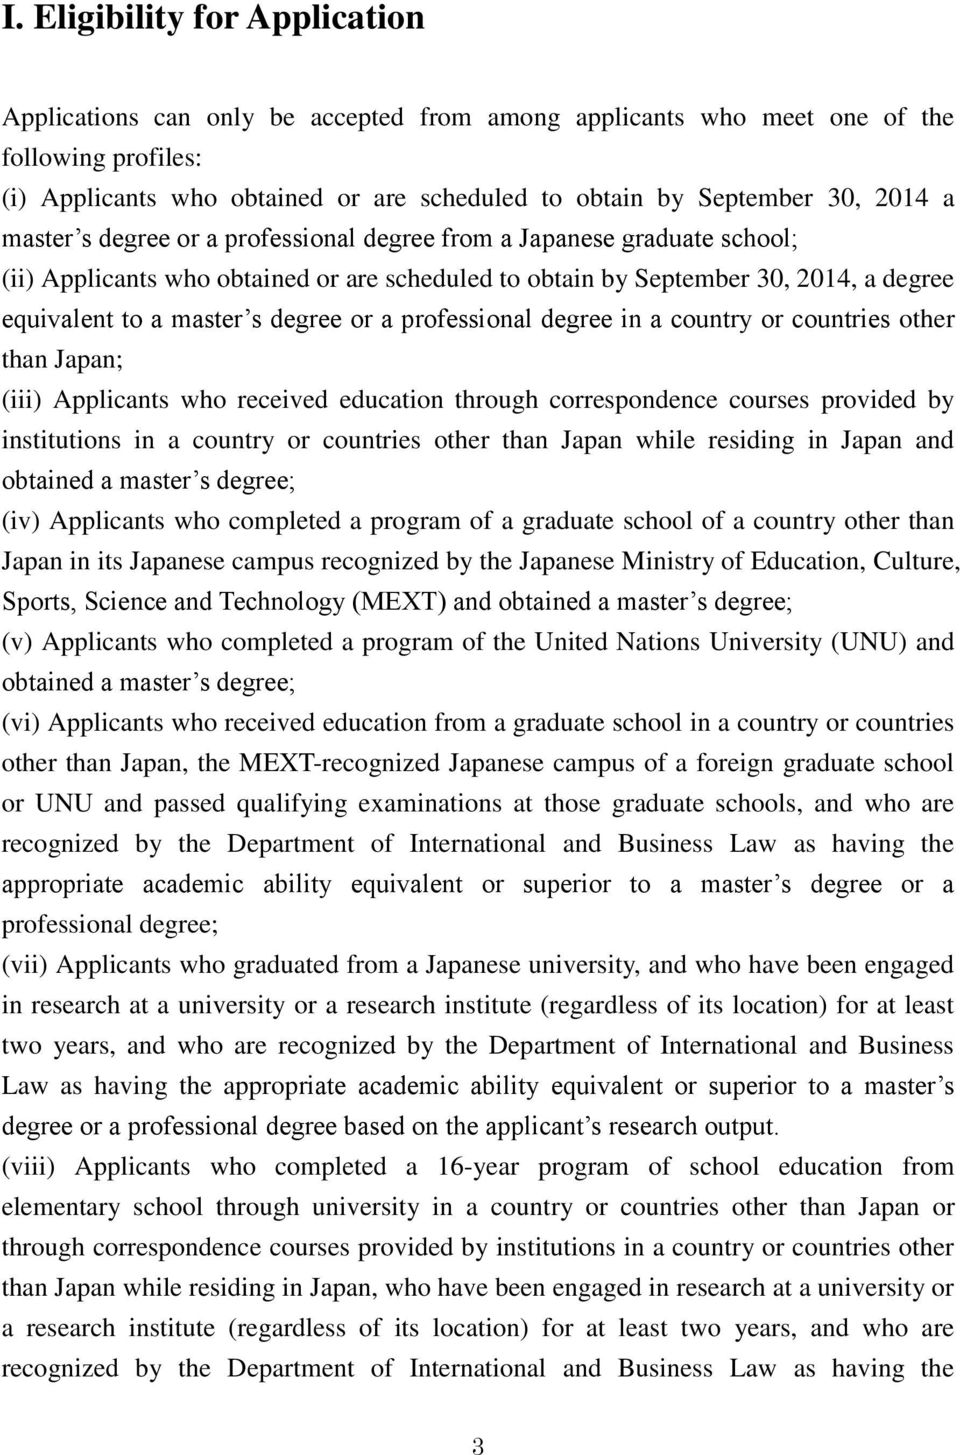 degree or a professional degree in a country or countries other than Japan; (iii) Applicants who received education through correspondence courses provided by institutions in a country or countries